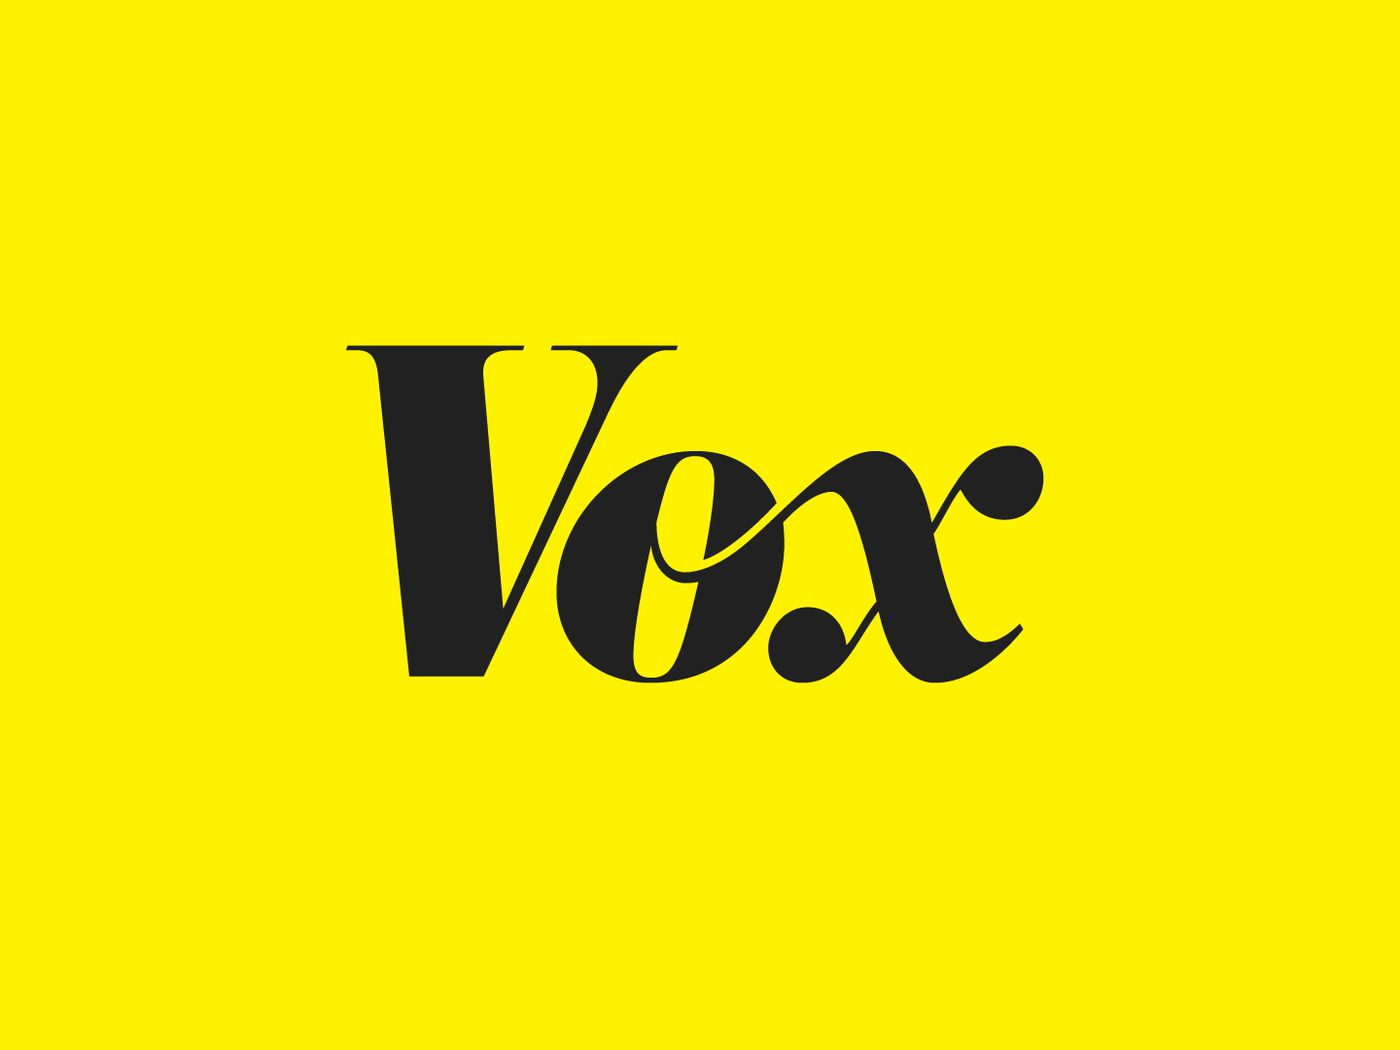 How you can support Vox - Vox